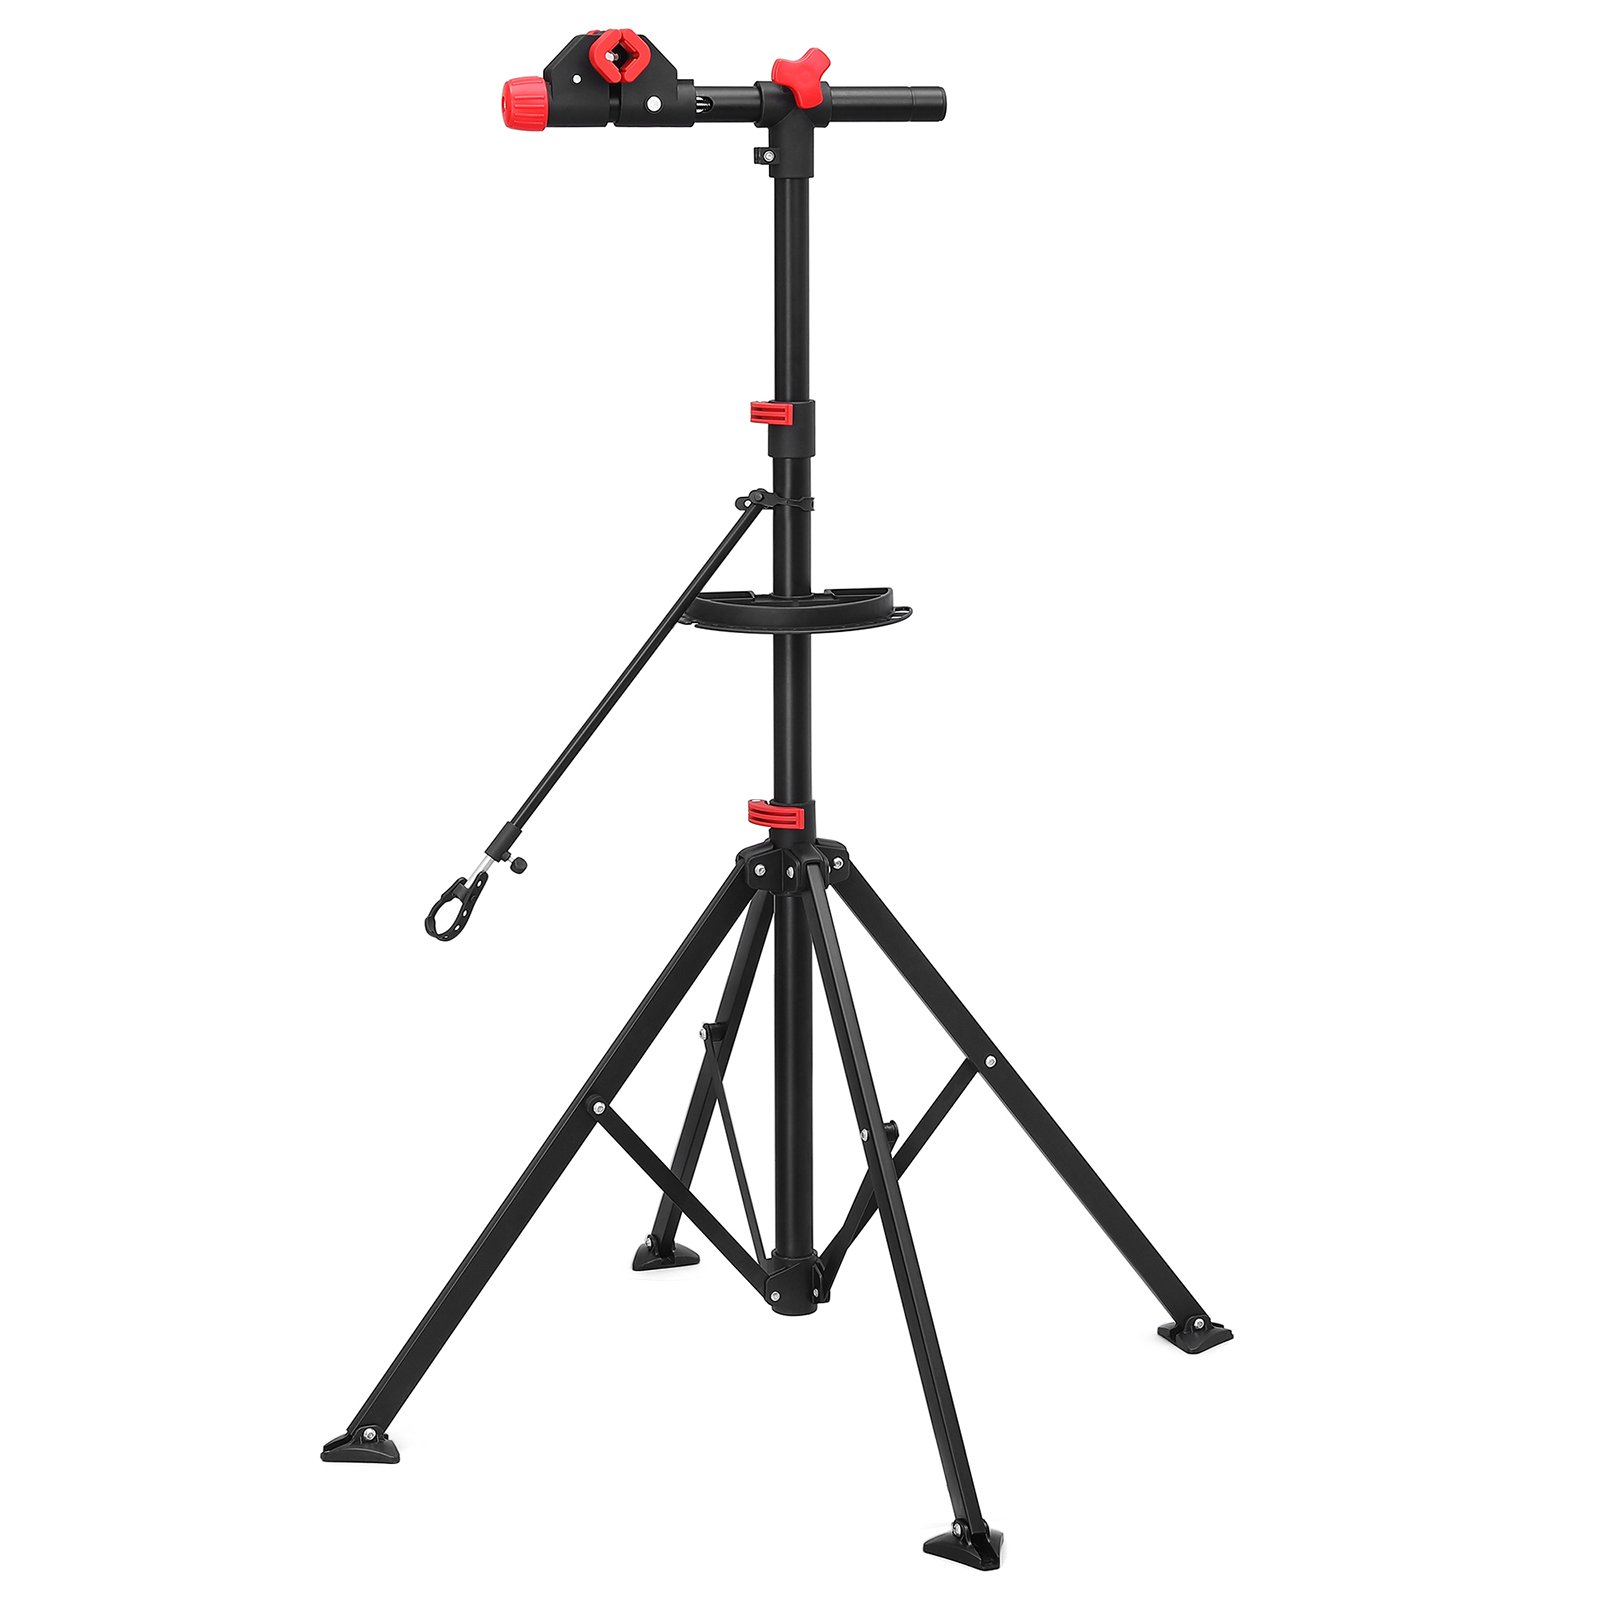 SONGMICS Bike Repair Stand Rack with Quick Release by SONGMICS